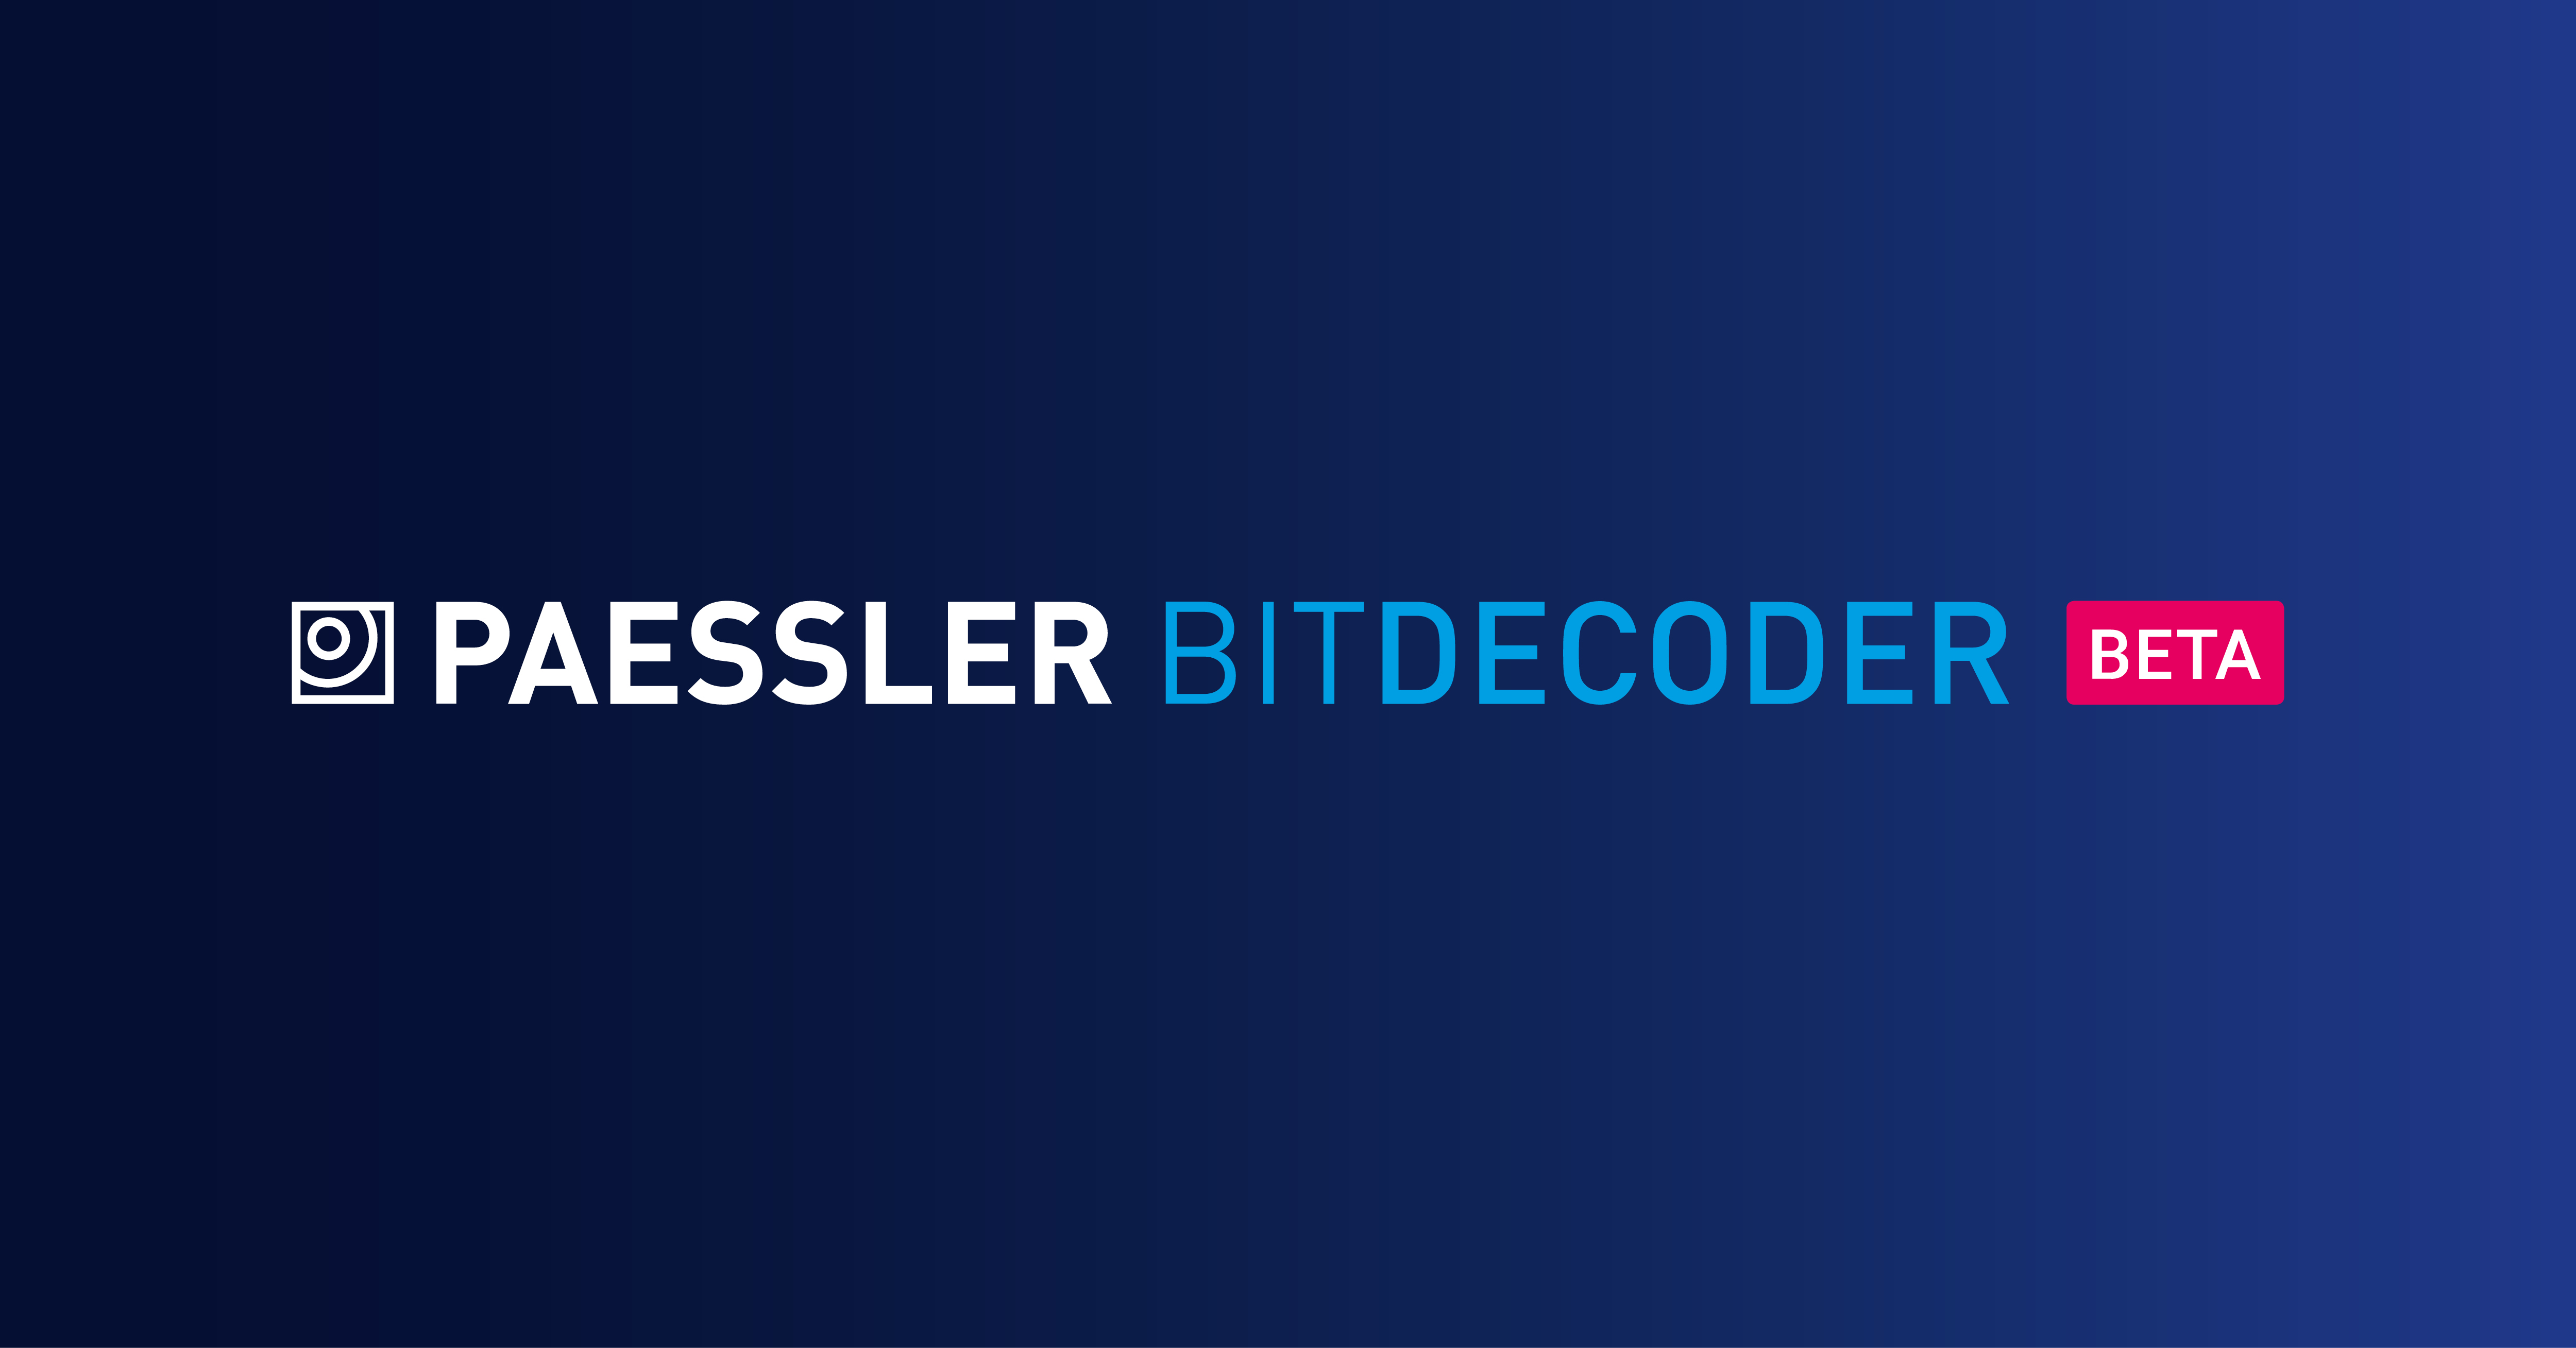 Paessler BitDecoder presented in a keynote at the embedded world 2020